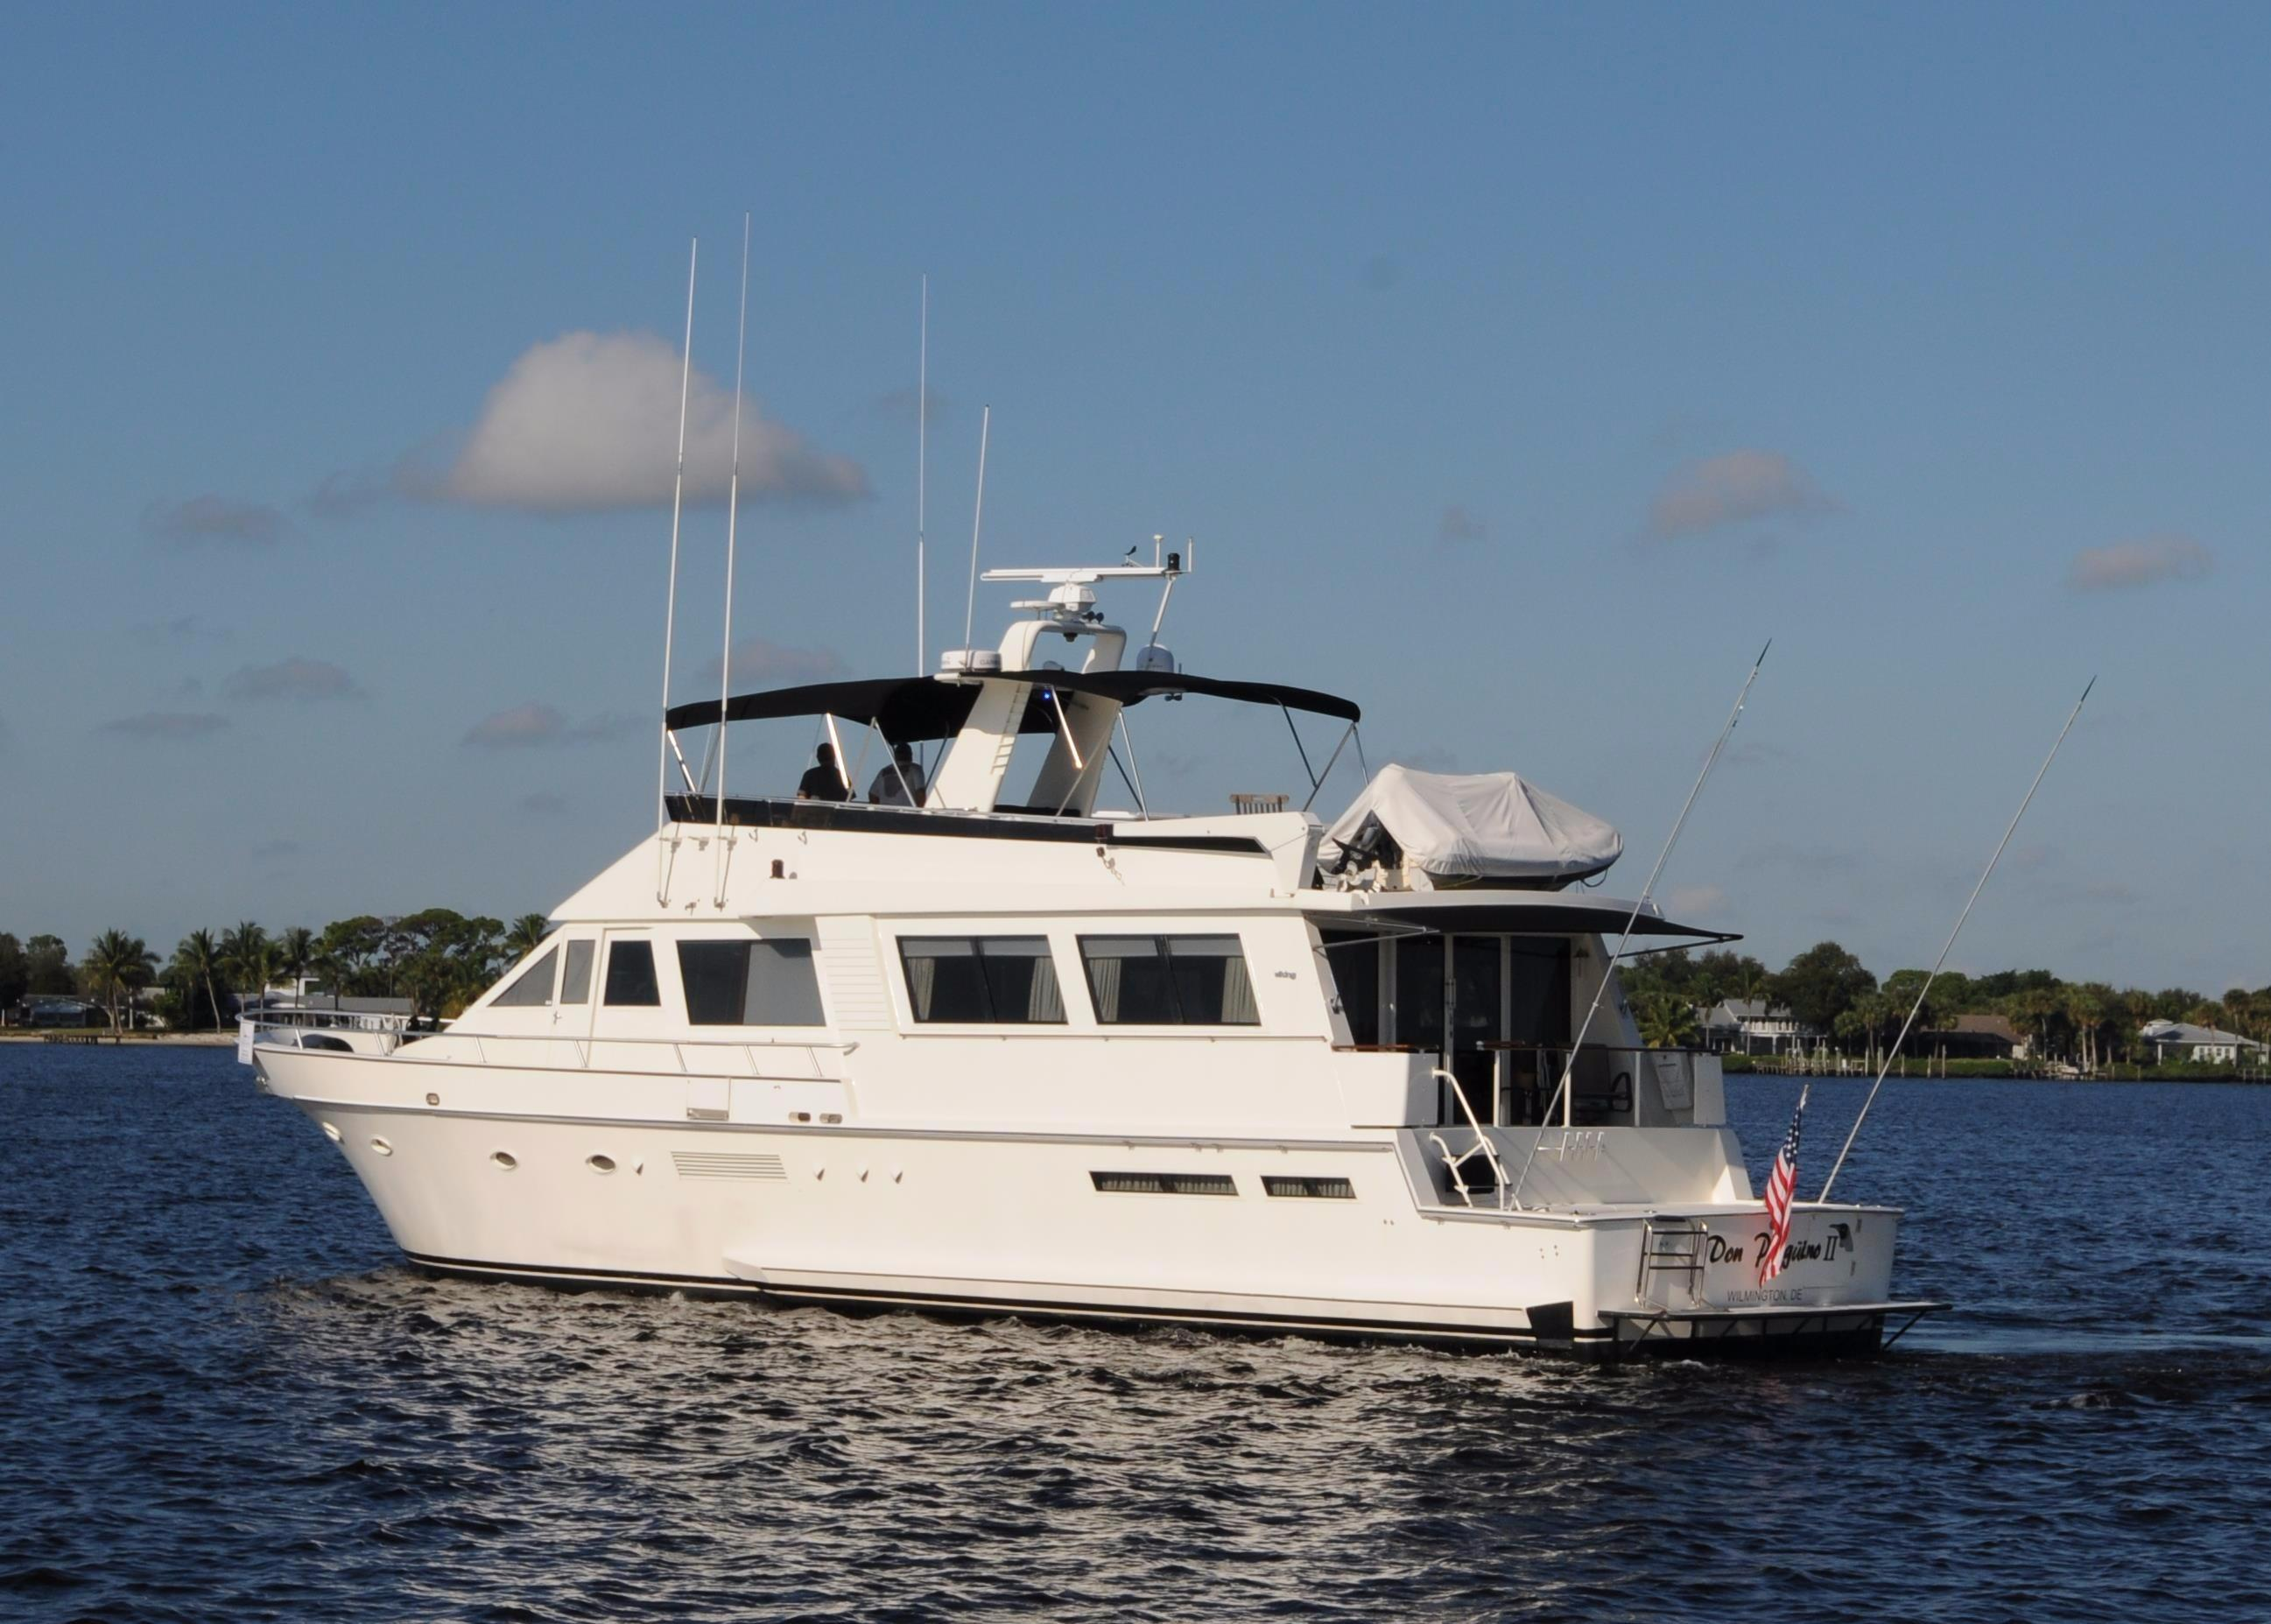 72 viking yachts 1991 for sale in stuart florida us for 72 hatteras motor yacht for sale